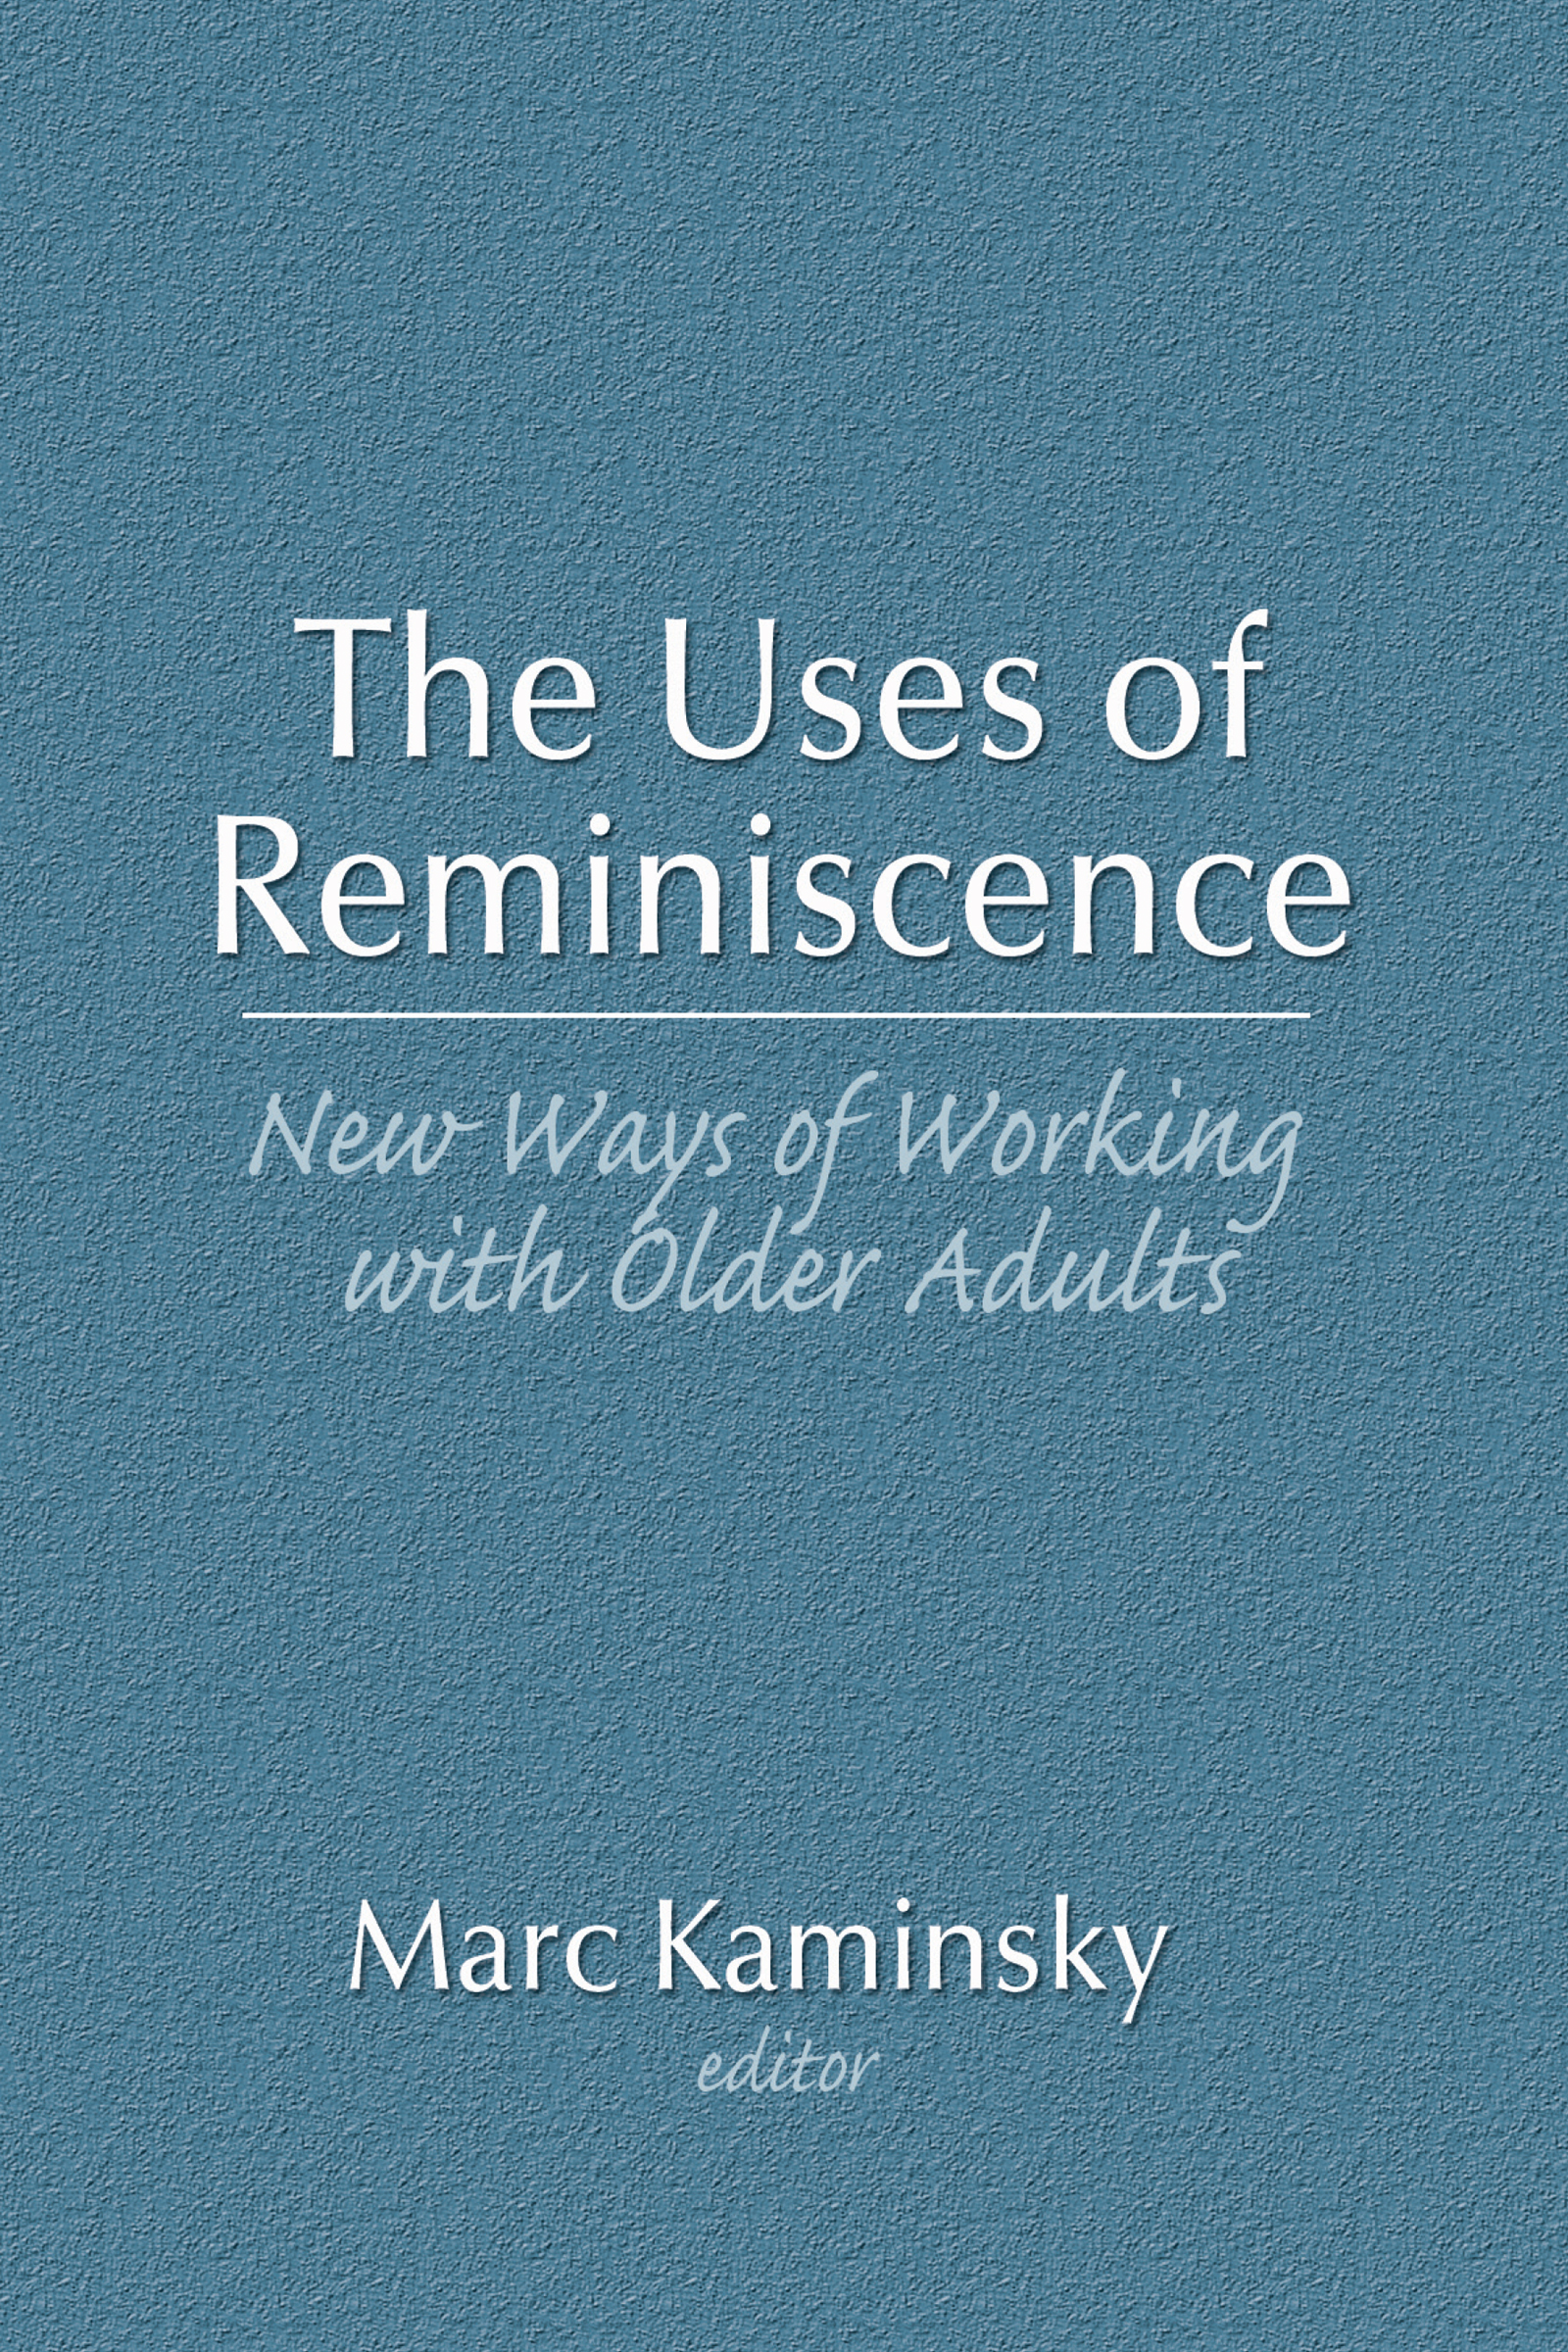 The Uses of Reminiscence: New Ways of Working With Older Adults book cover